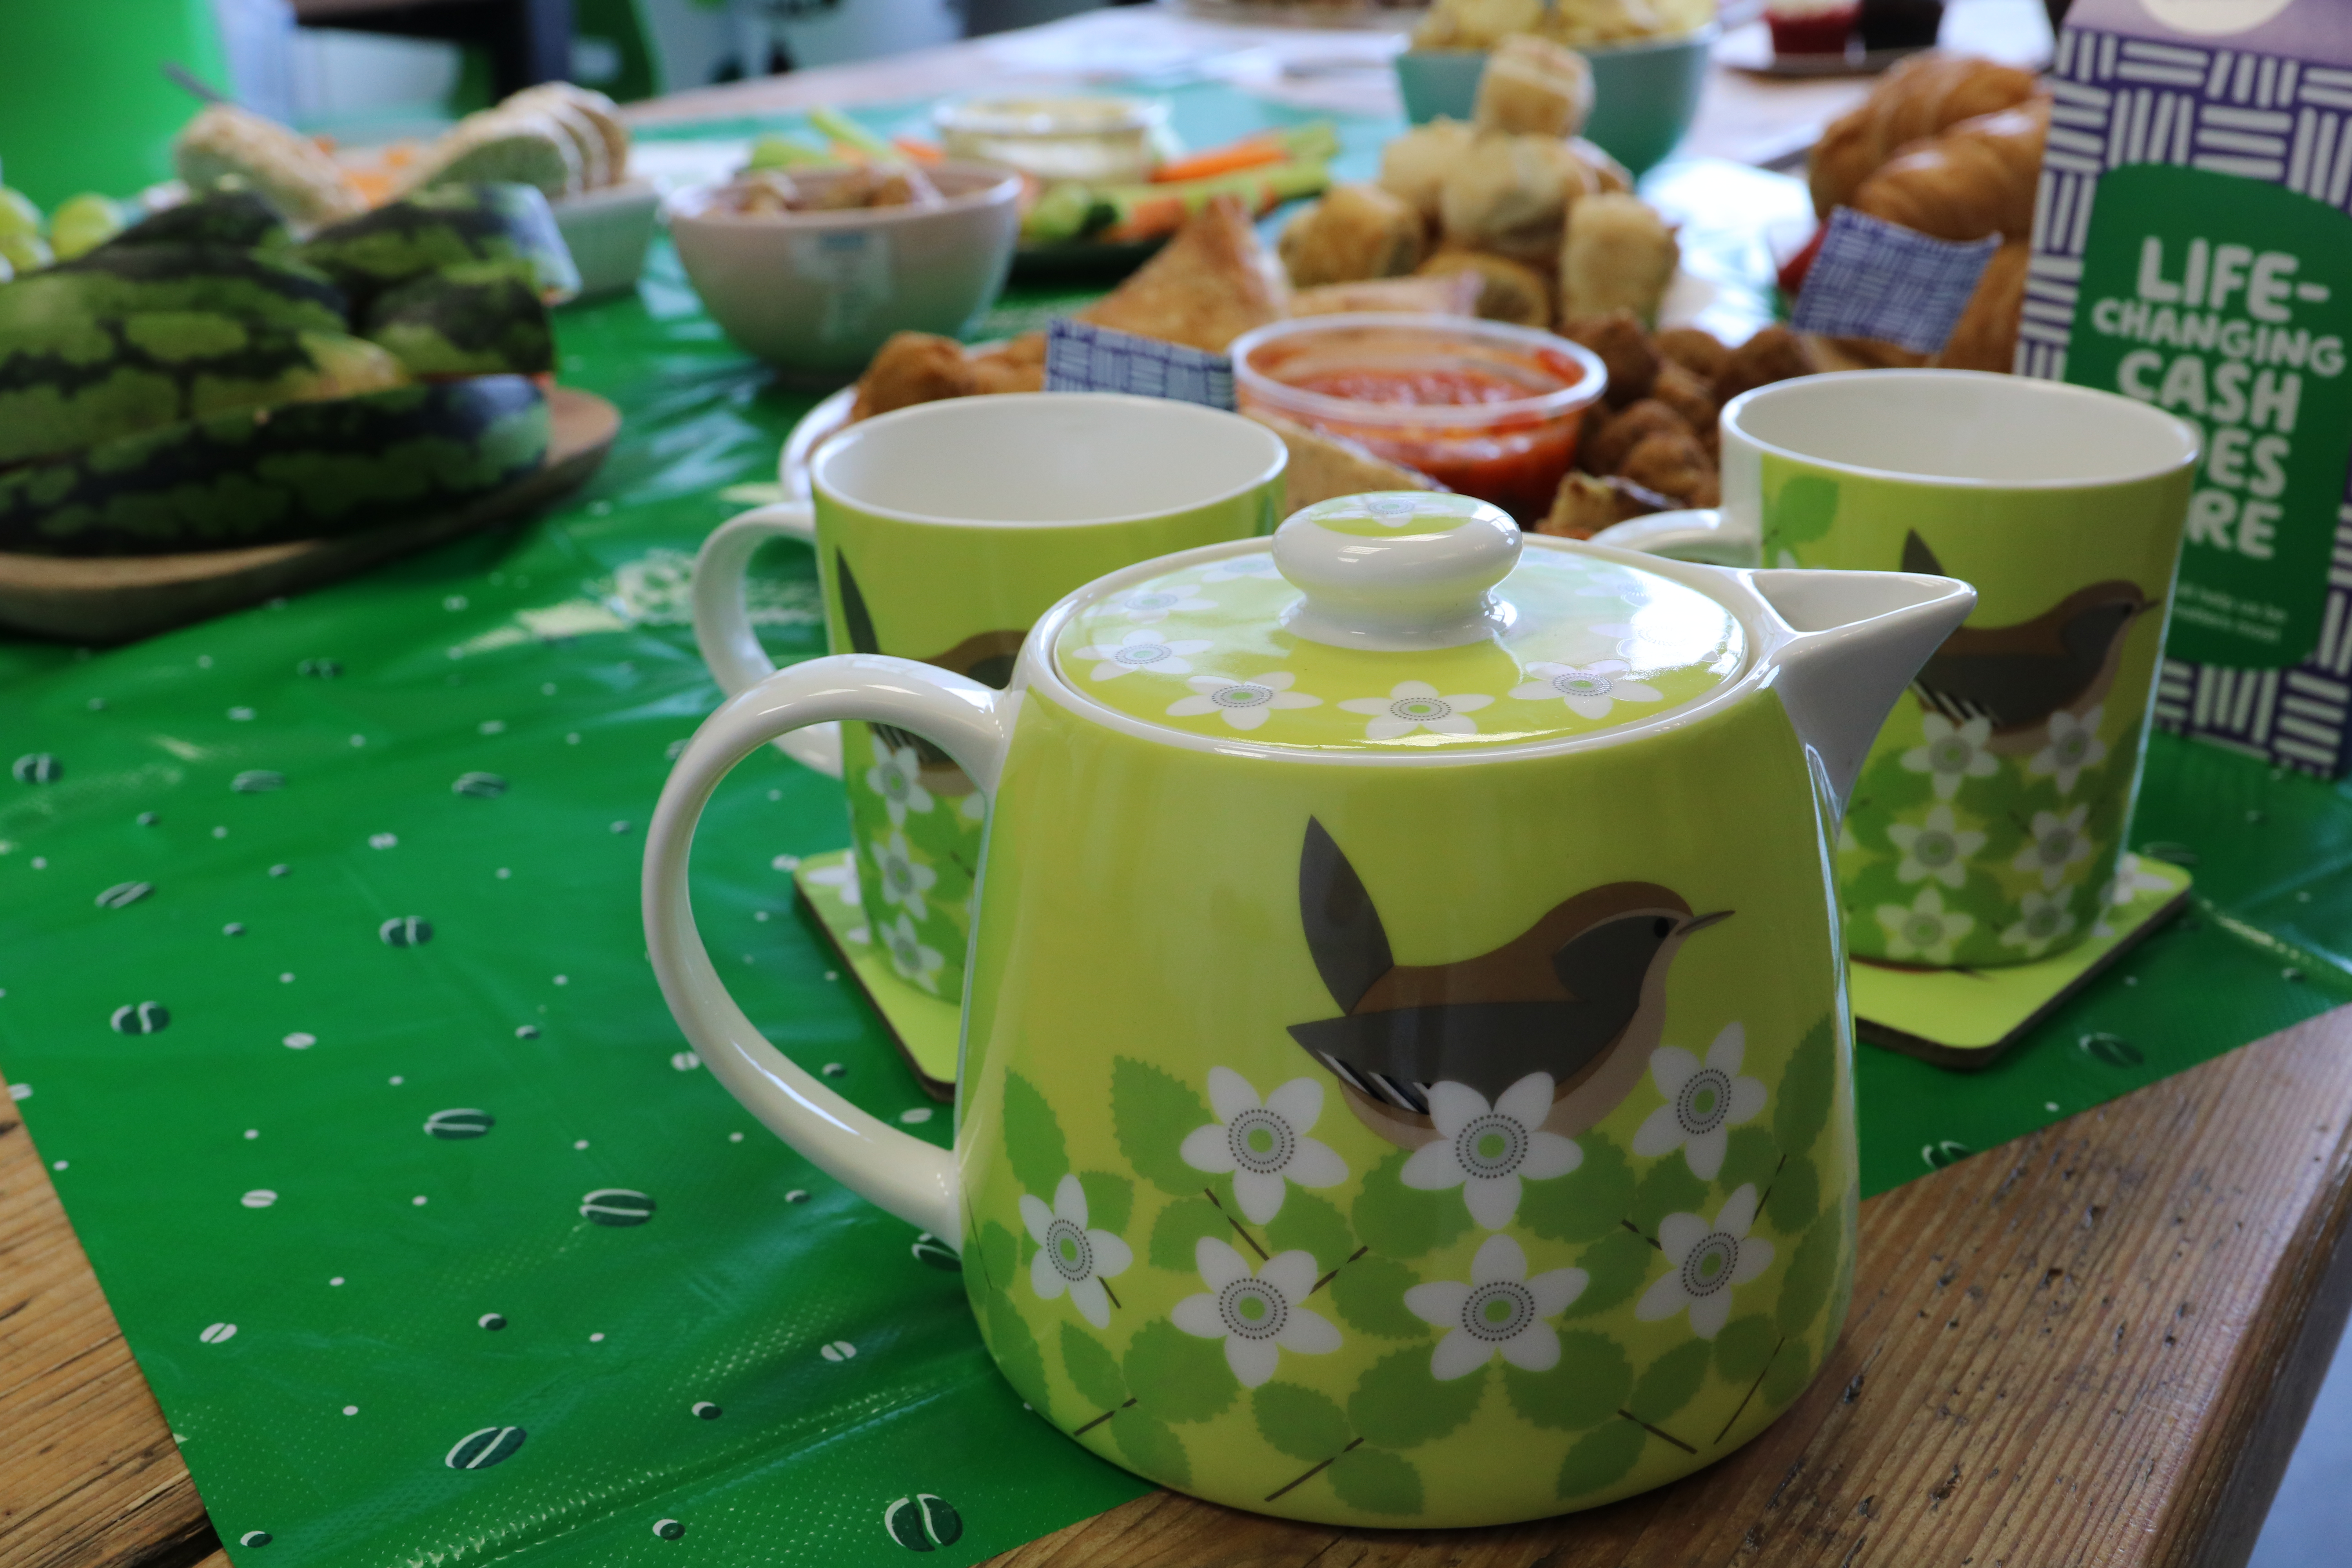 A green teapot on a table surrounded by cups and cakes.